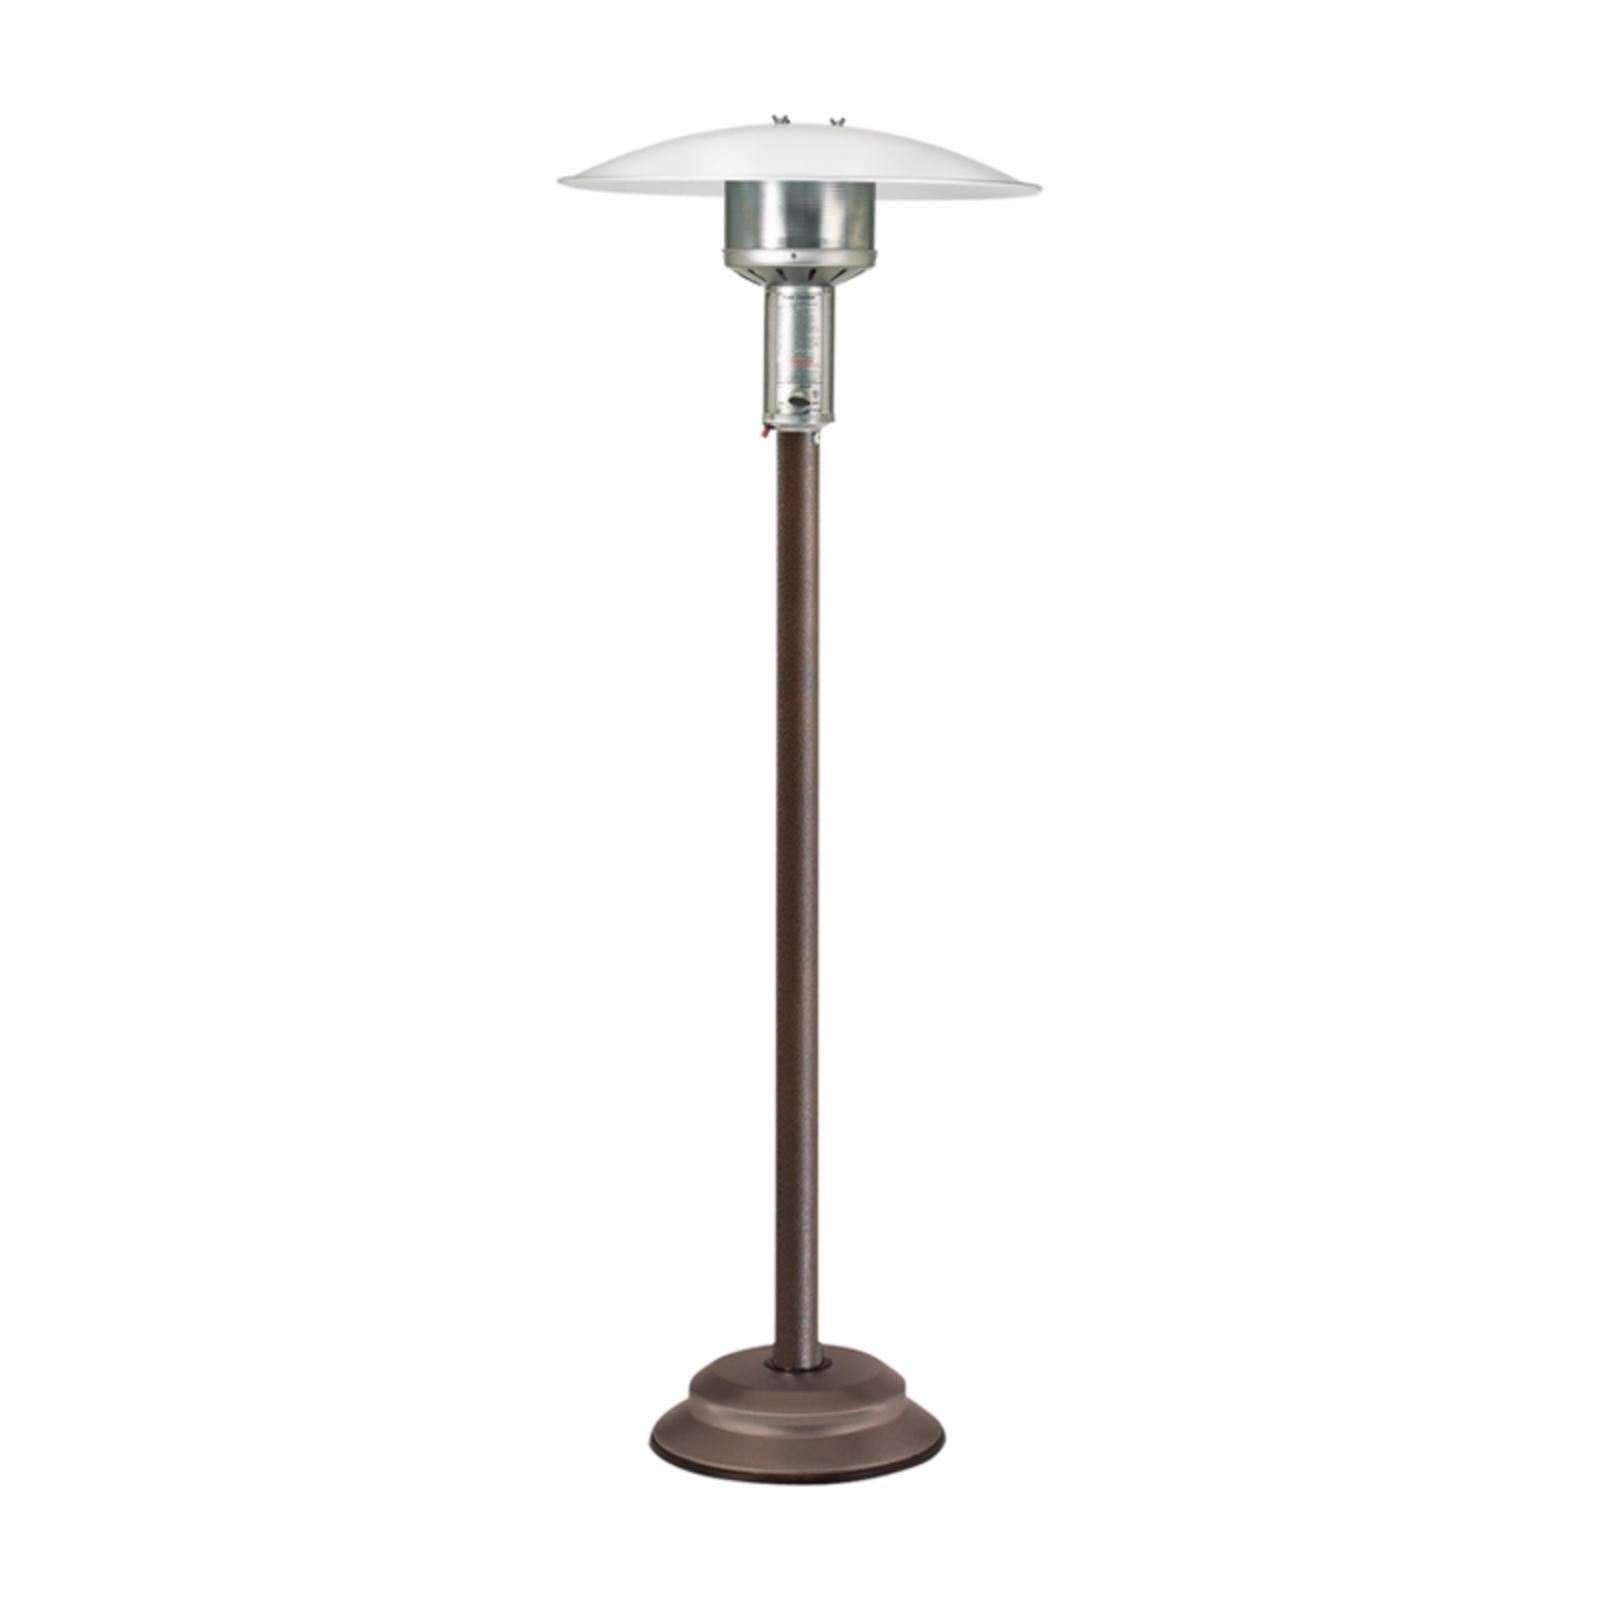 Patio Comfort Antique Bronze Patio Heater - NPC05AB